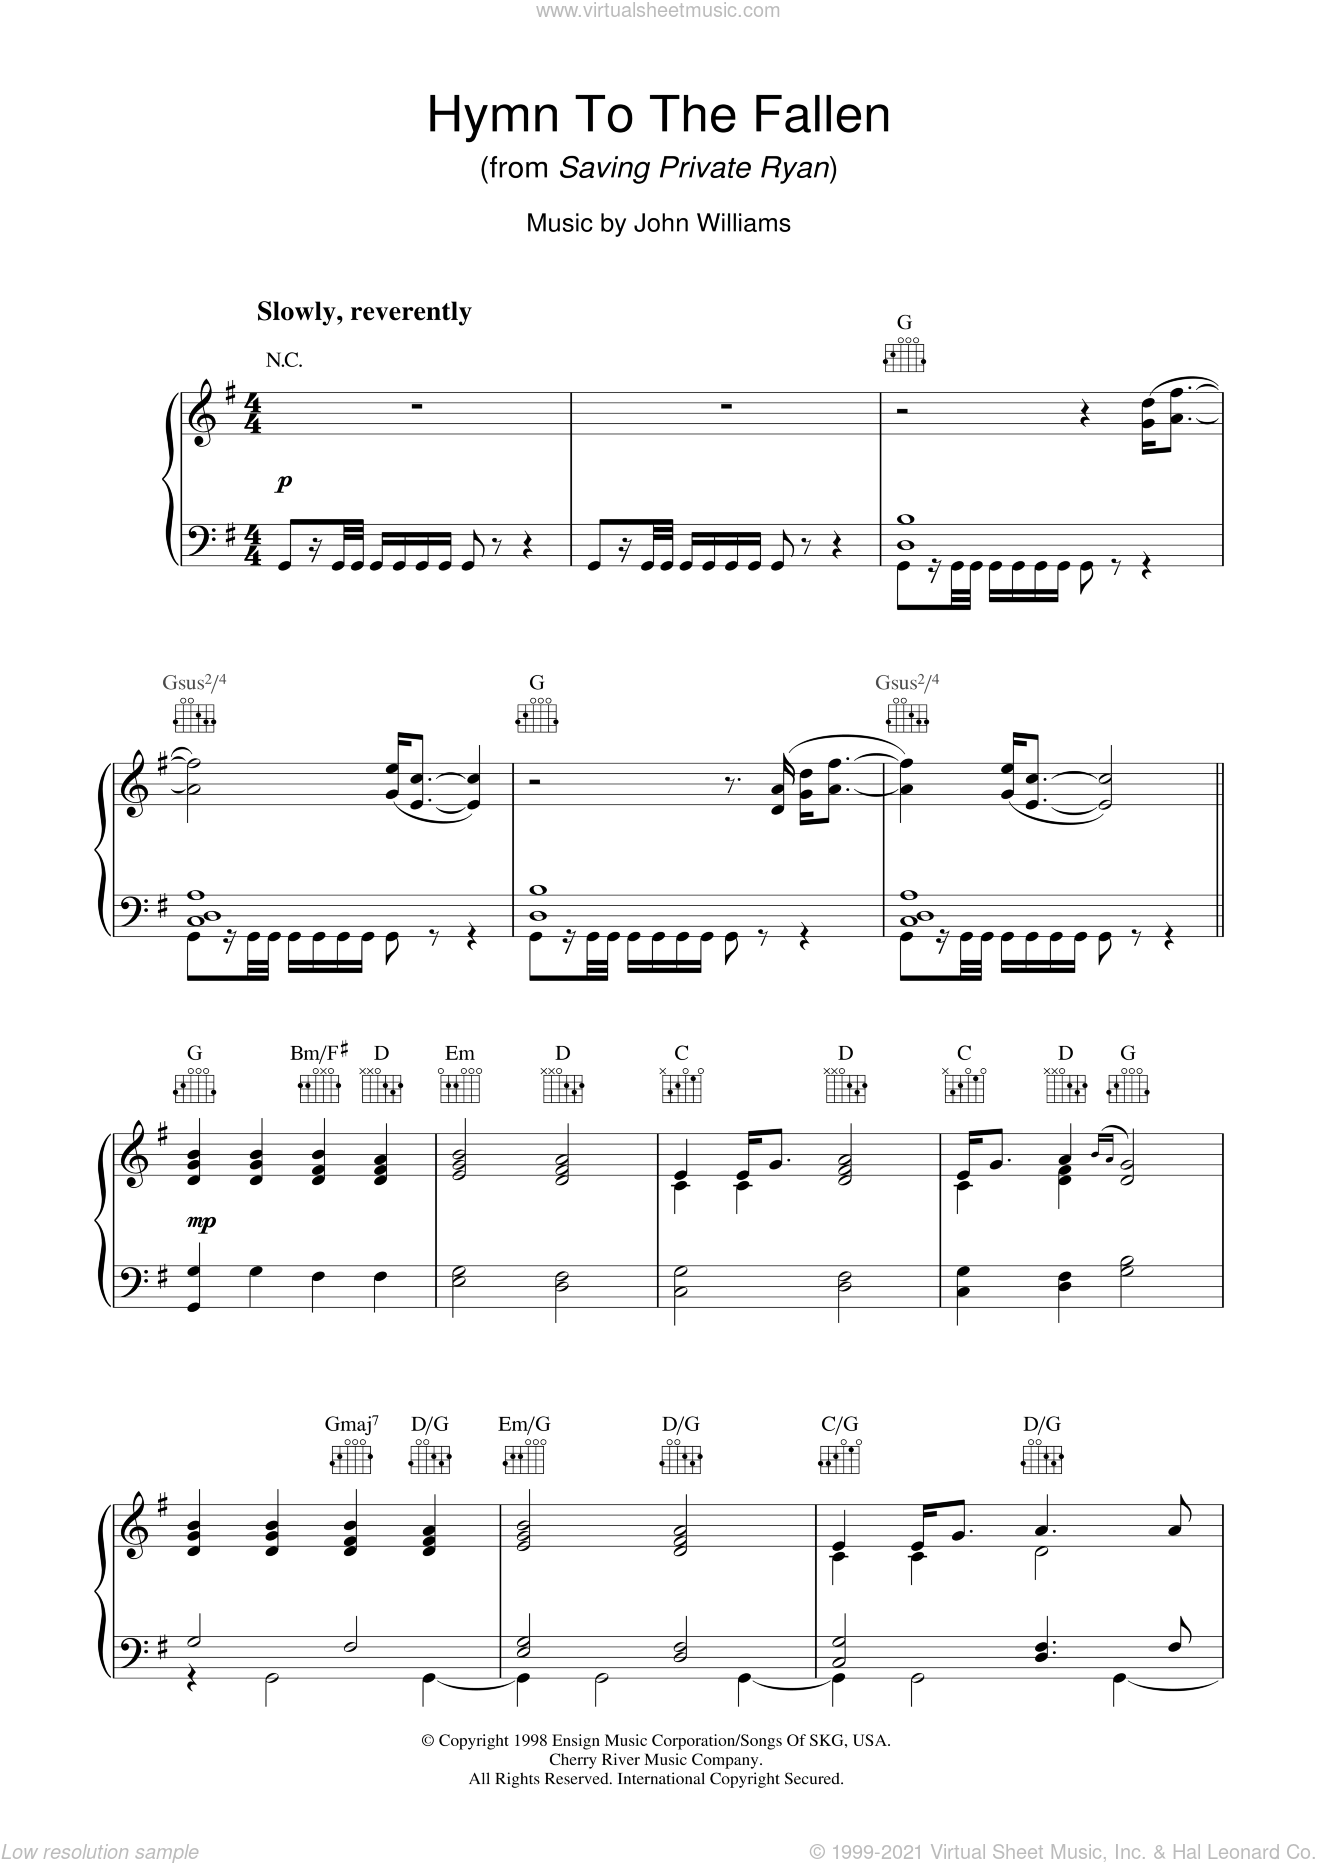 Hymn To The Fallen (from Saving Private Ryan) sheet music for piano solo by John Williams, intermediate skill level